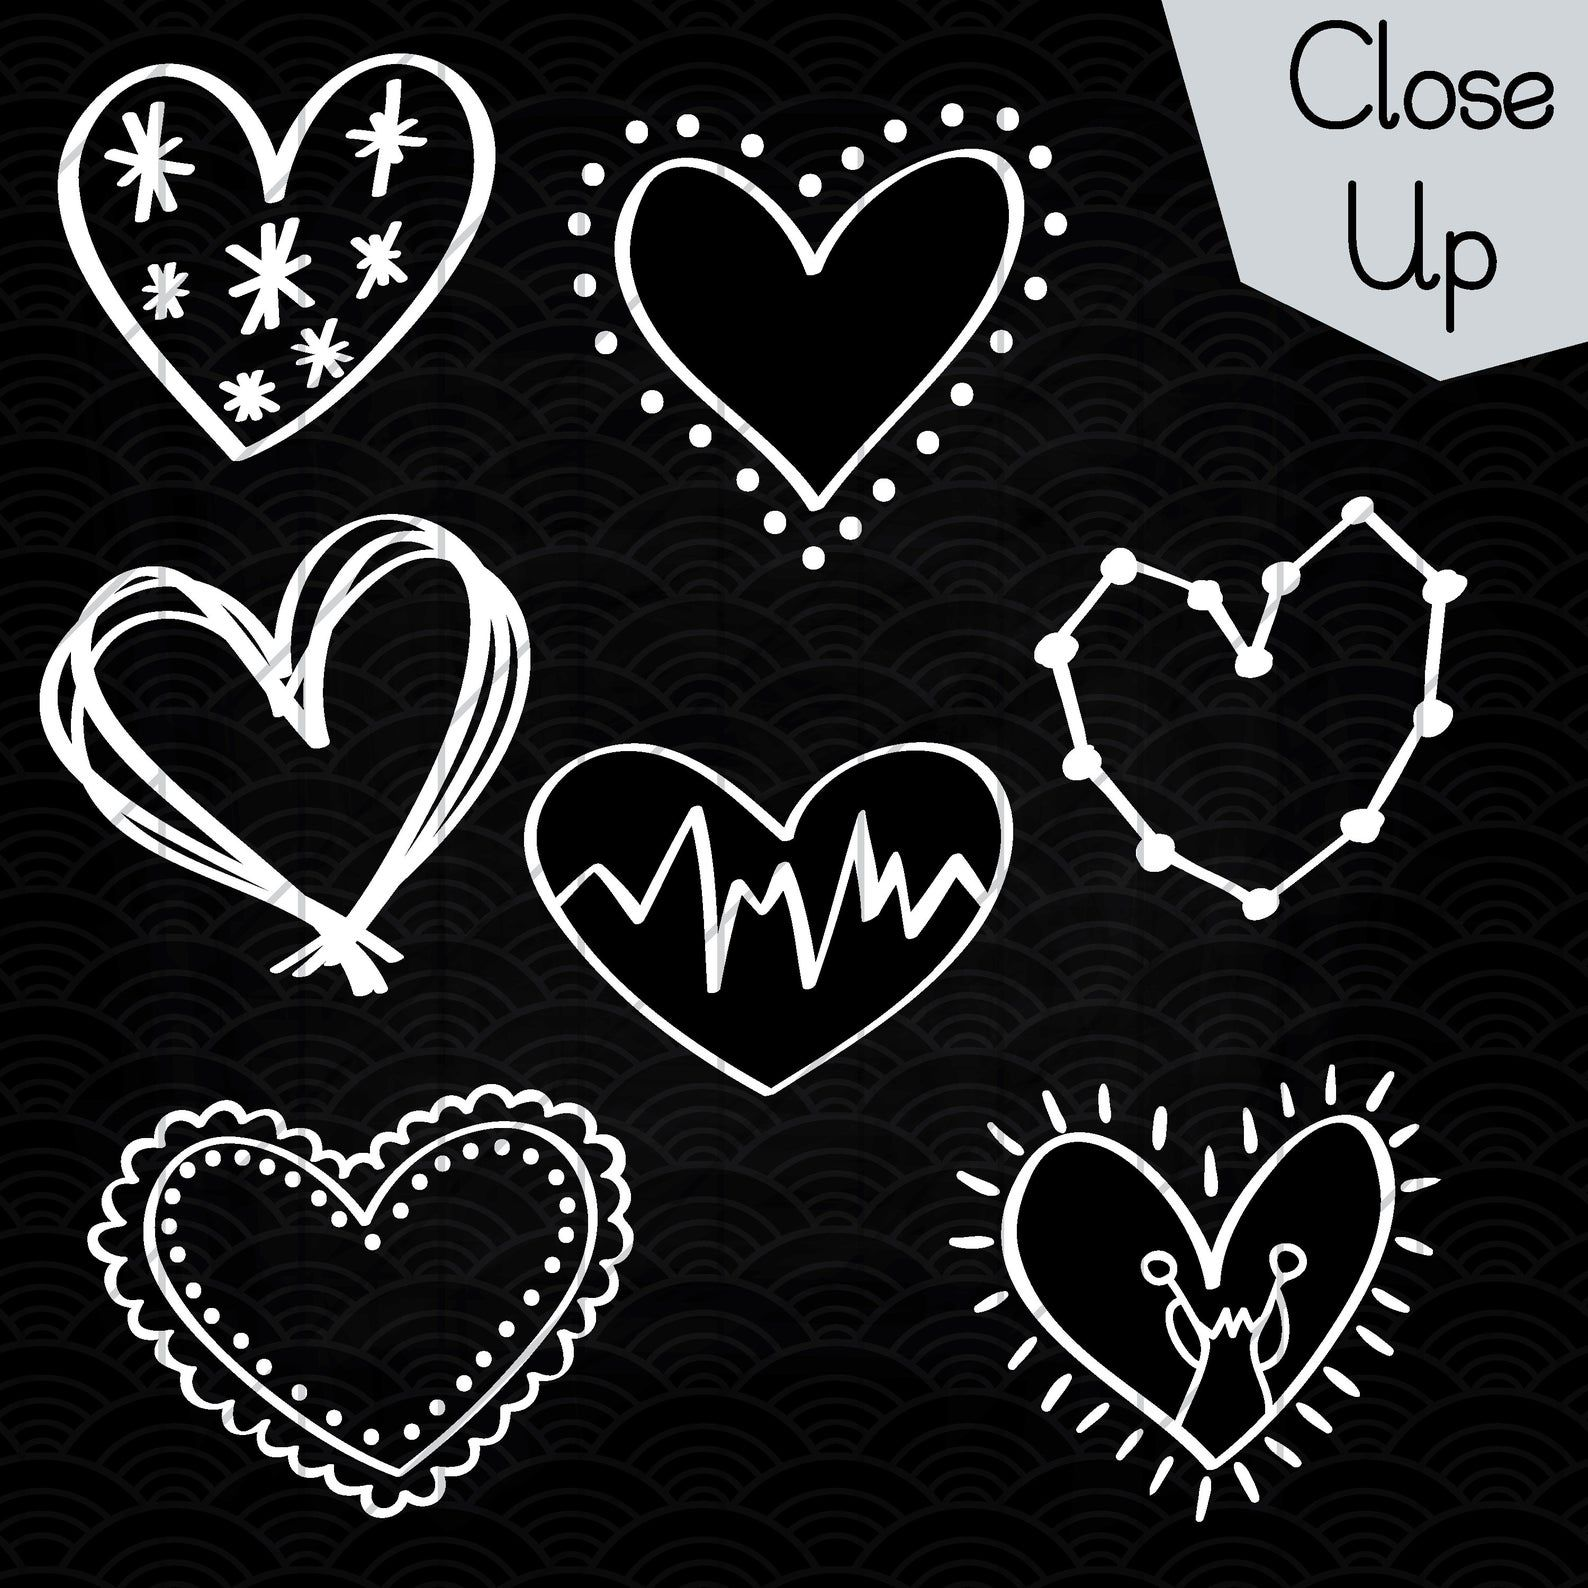 White Hearts Outline Clip Art Hand Drawn Romance Vector Etsy In 2021 White Heart Outline Heart Outline Heart Hands Drawing